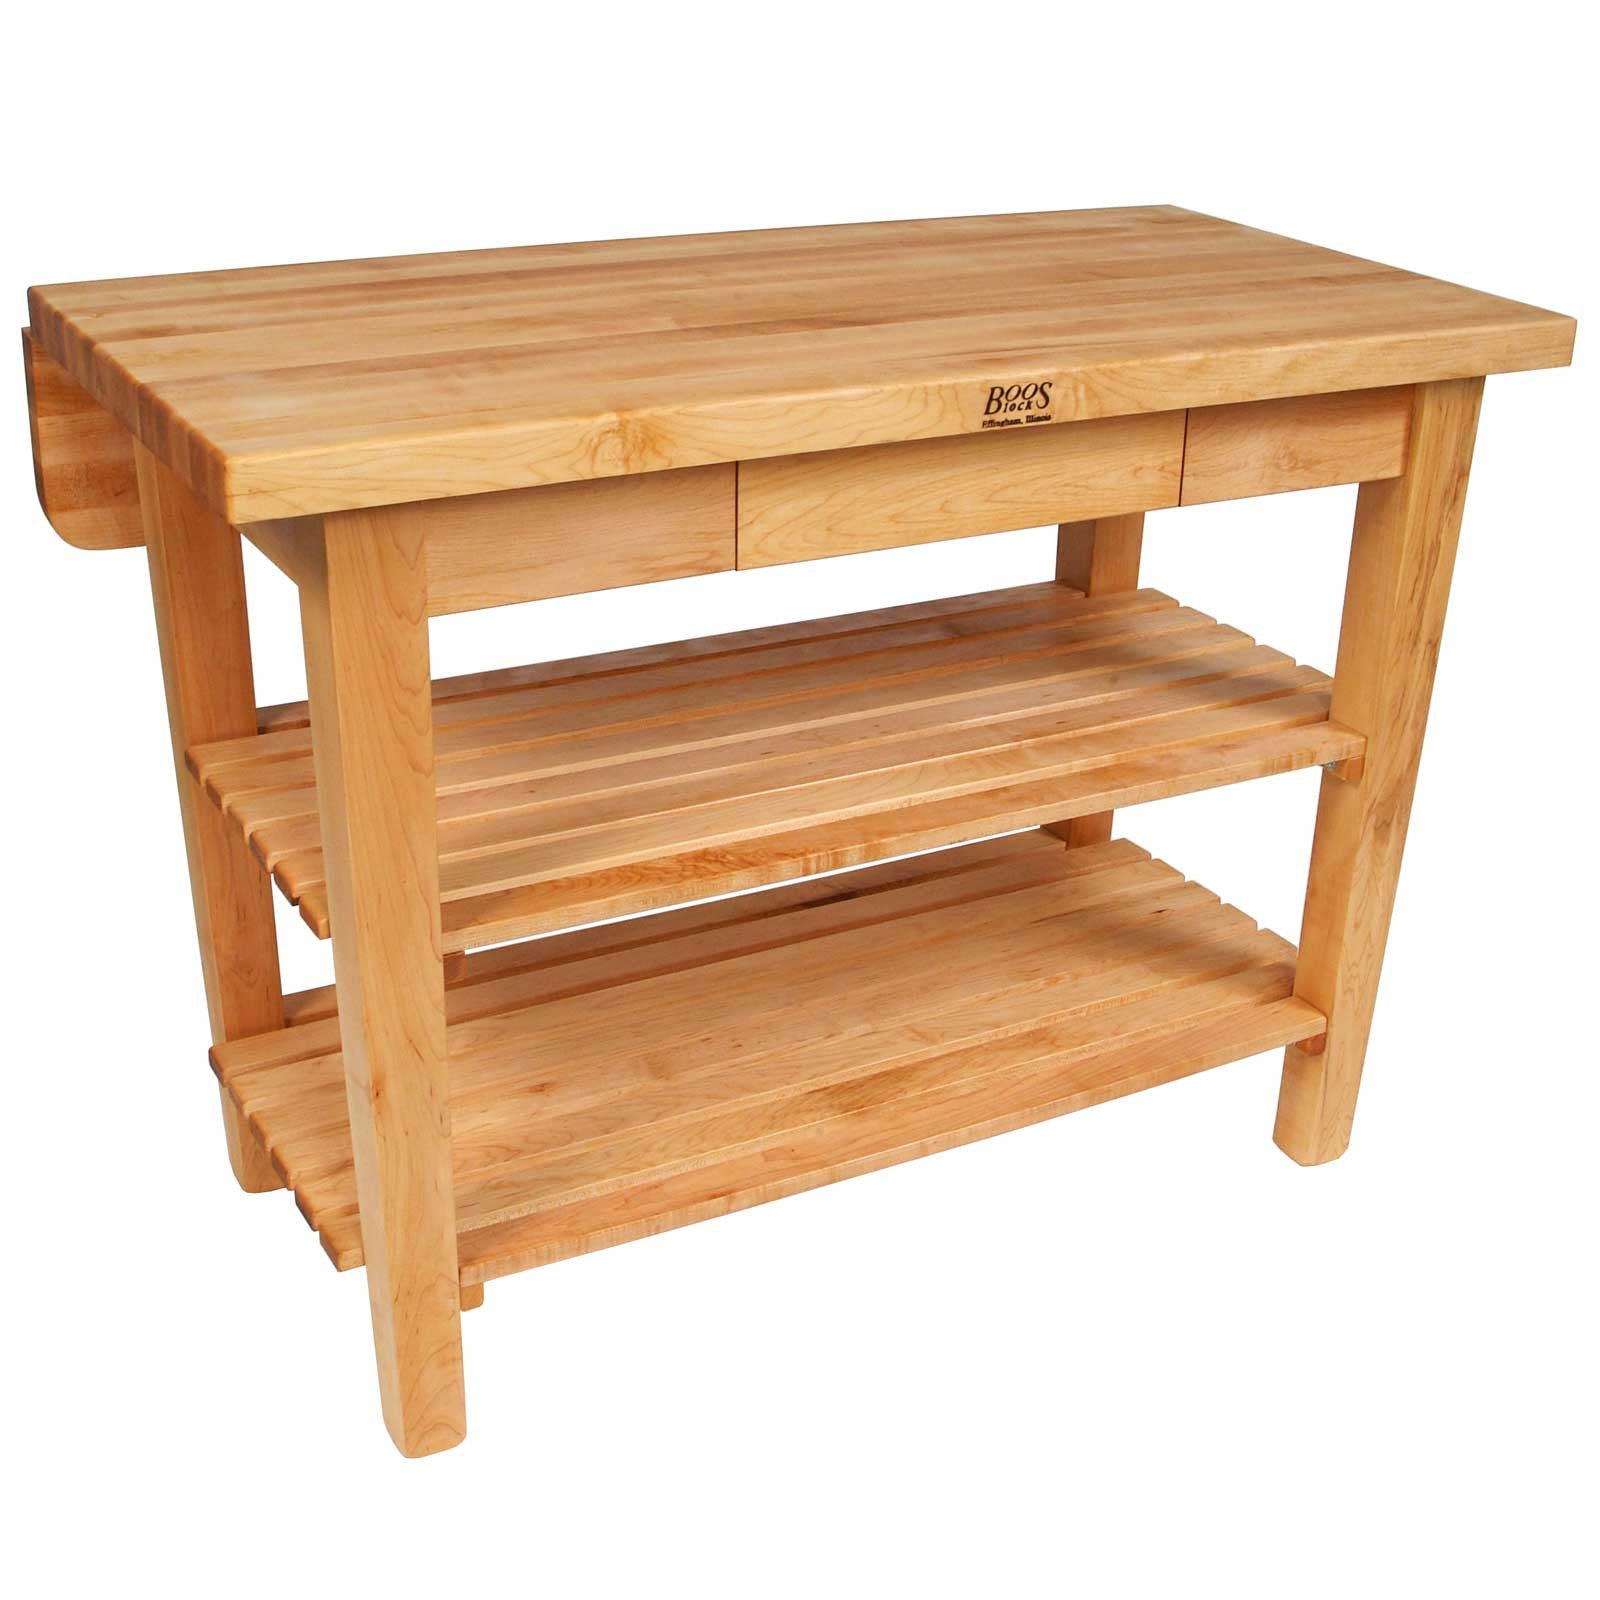 John Boos KIB Maple Top Kitchen Island Bar